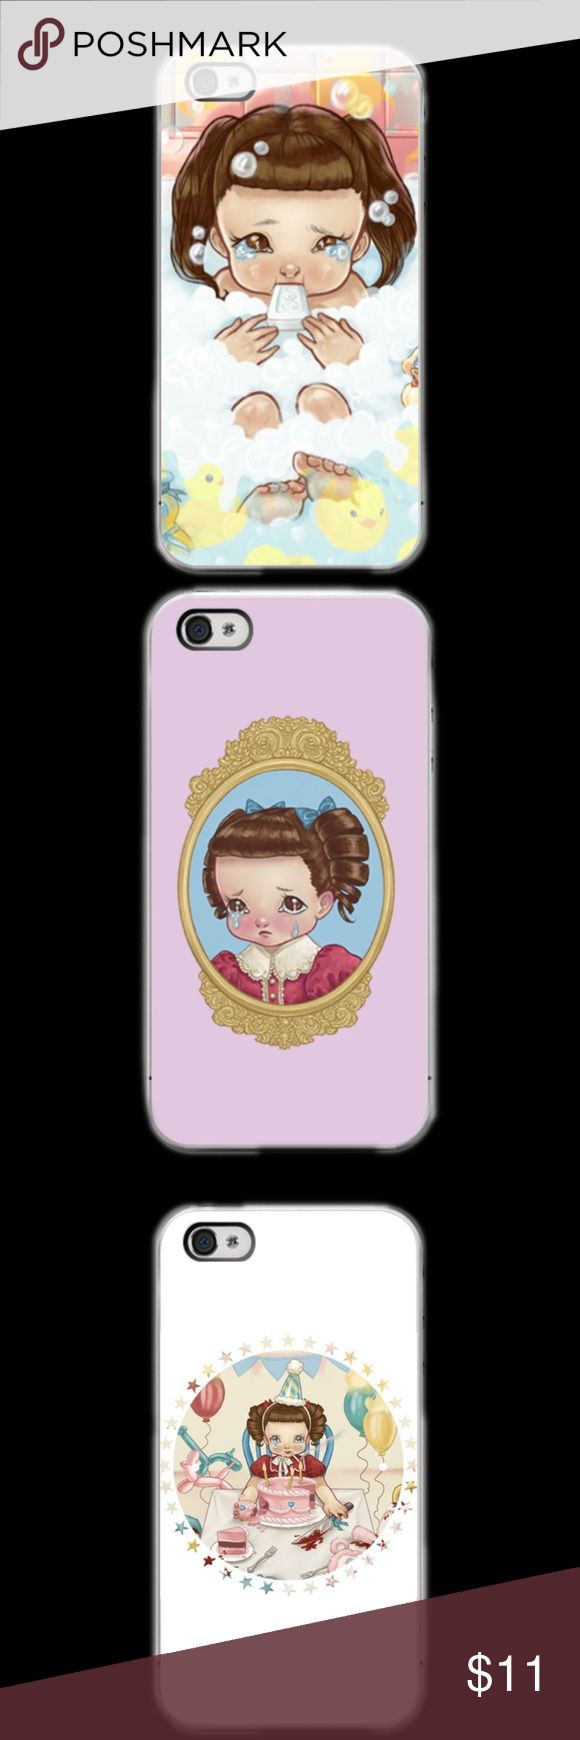 MELANIE MARTINEZ CARTOON IPHONE 5c 5/5s 6/6s 6/6s+ LISTING IS FOR ONE CASE. YOU GET TO CHOOSE WHAT DESIGN YOU WANT. This a iPhone 5c 5/5s 6/6s 6/6s Plus phone case. It is made of durable hard plastic. Easy snap-on design for a lightweight feel and great phone protection. PLEASE SPECIFY WHAT SIZE CASE AND PICTURE OF CASE. BEFORE YOU PURCHASE LET US KNOW WHAT SIZE AND PICTURE.  